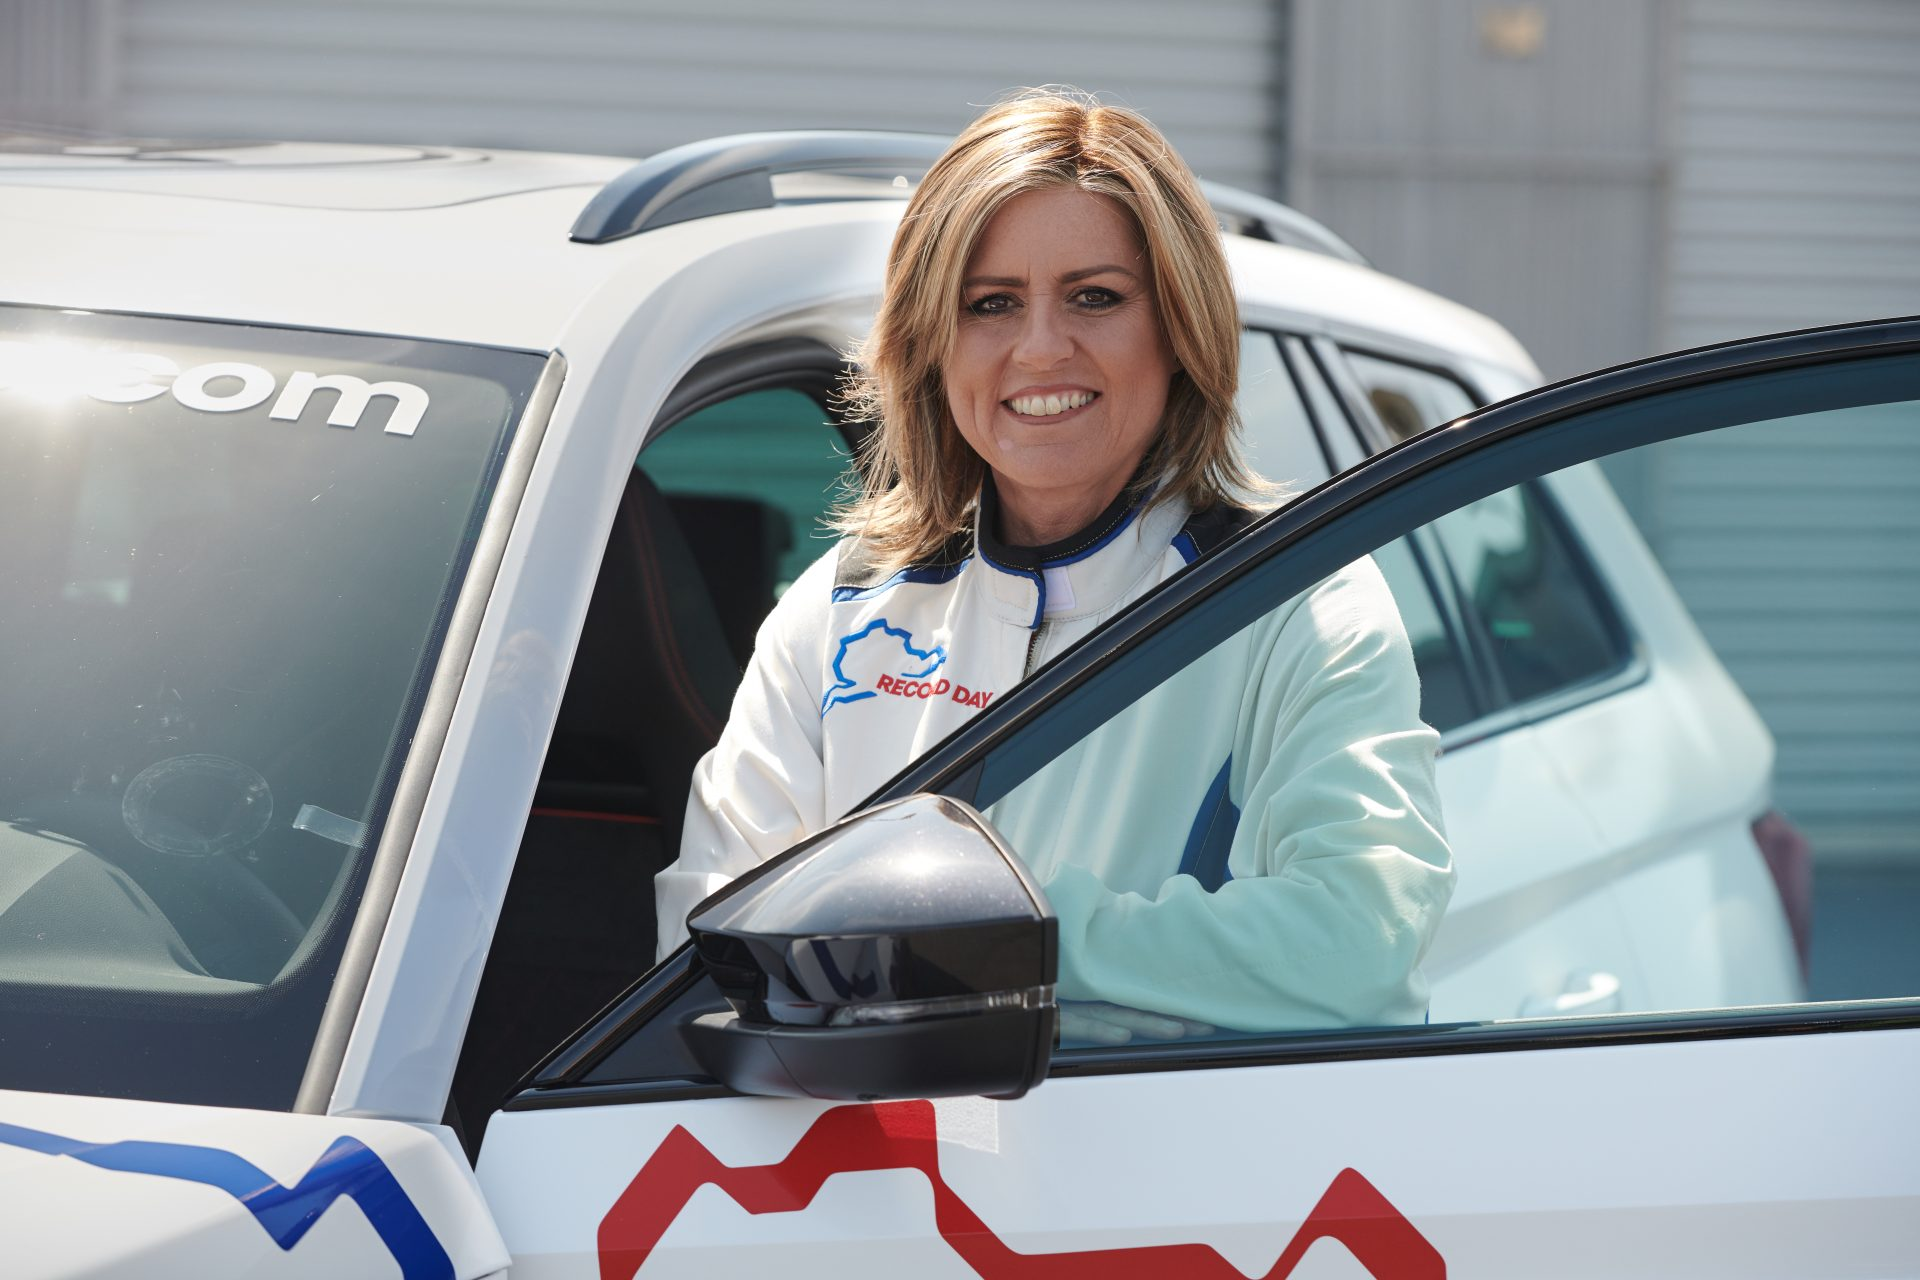 Top Gear star and 'Queen of the Ring' Sabine Schmitz dies aged 51